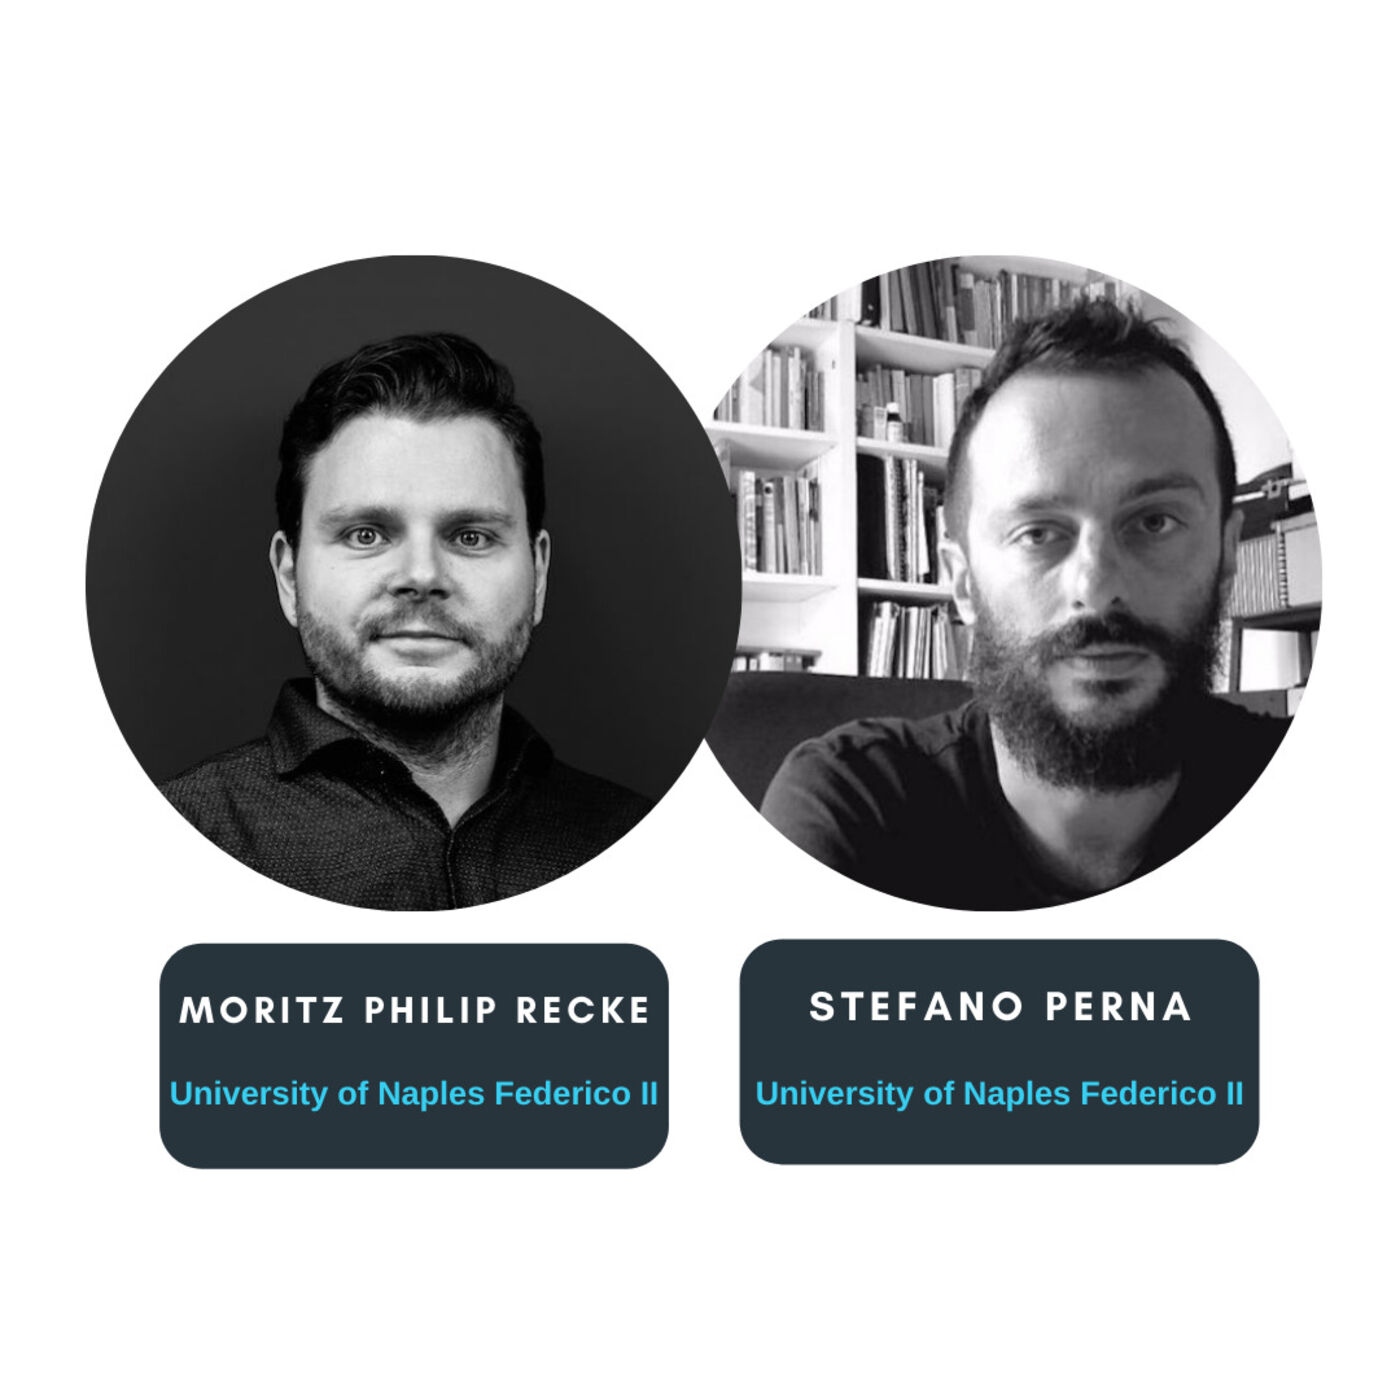 67 // Learning Objectives as Value Exchange with Moritz Philip Recke and Stefano Perna